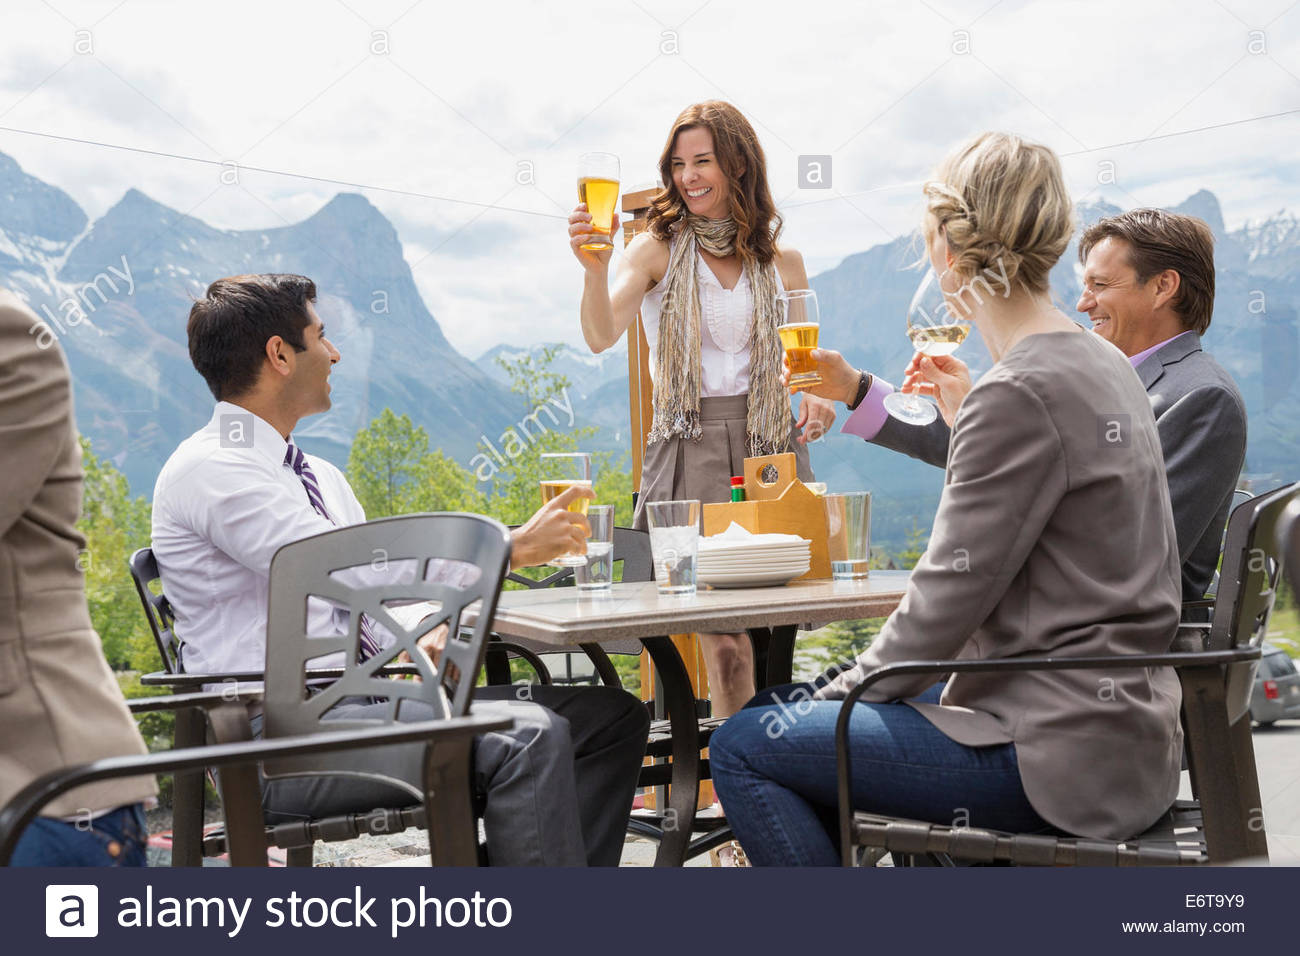 Business people toasting each other at networking event - Stock Image